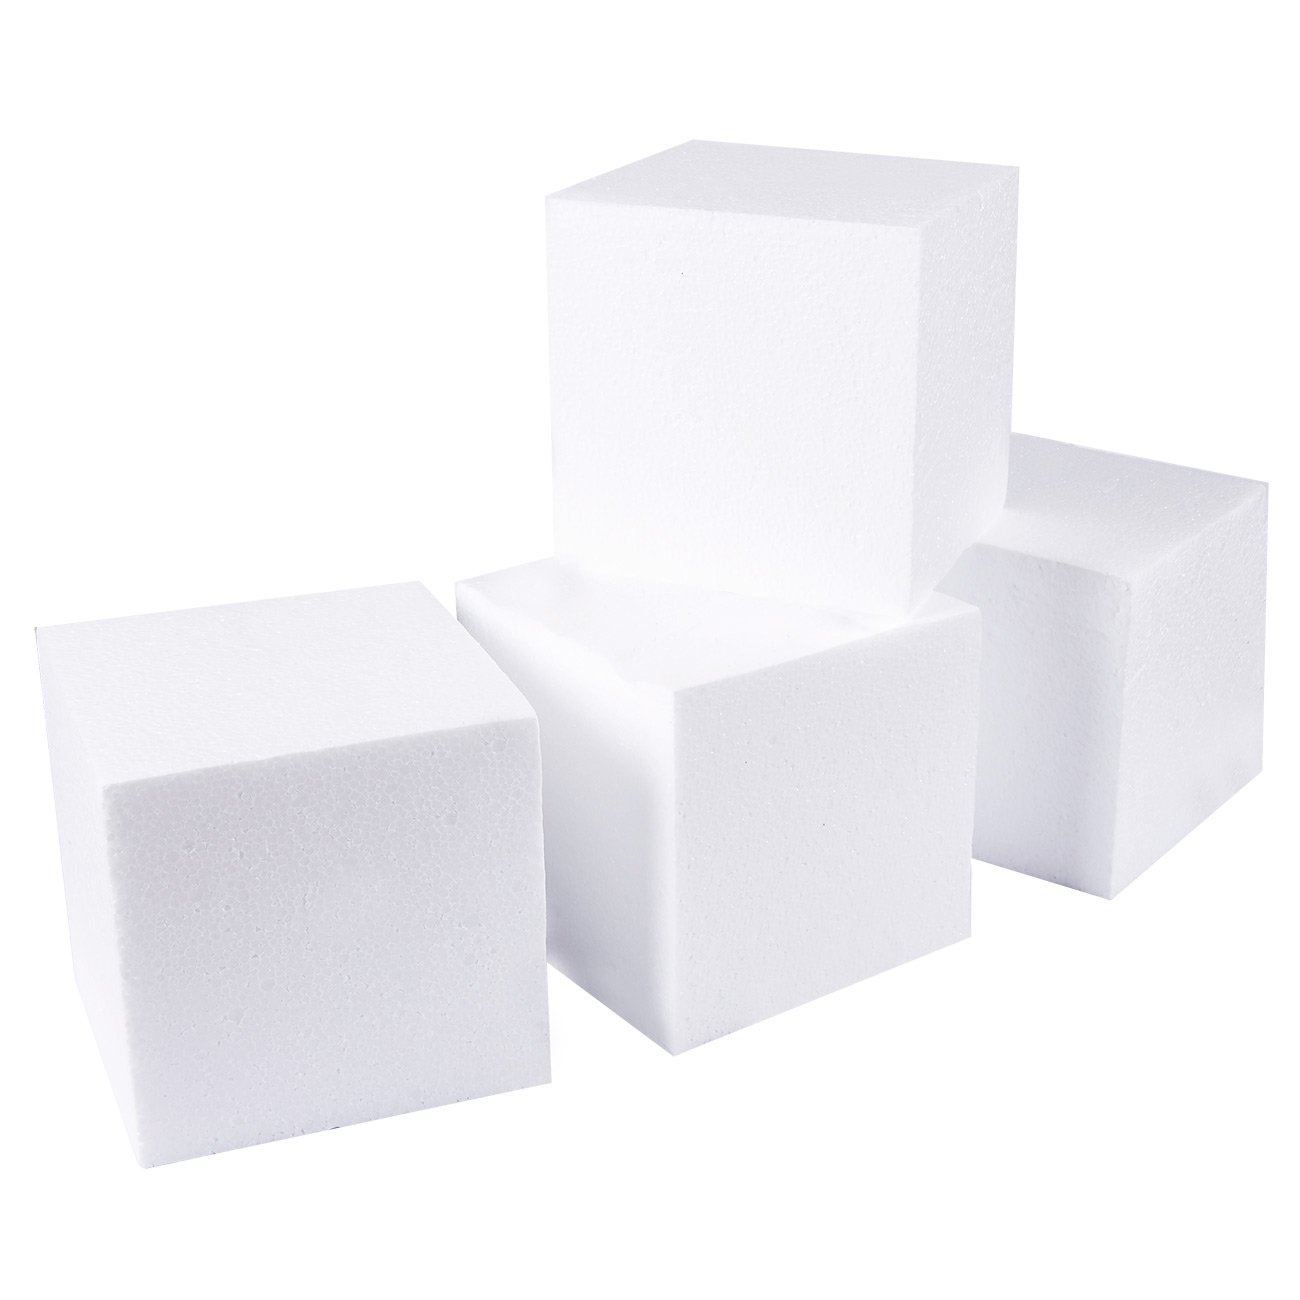 Craft Foam Cube - 4-Pack Square Polystyrene Foam Block Foam Brick for Sculpture, Modeling, DIY Arts and Crafts - White, 6 x 6 x 6 inches